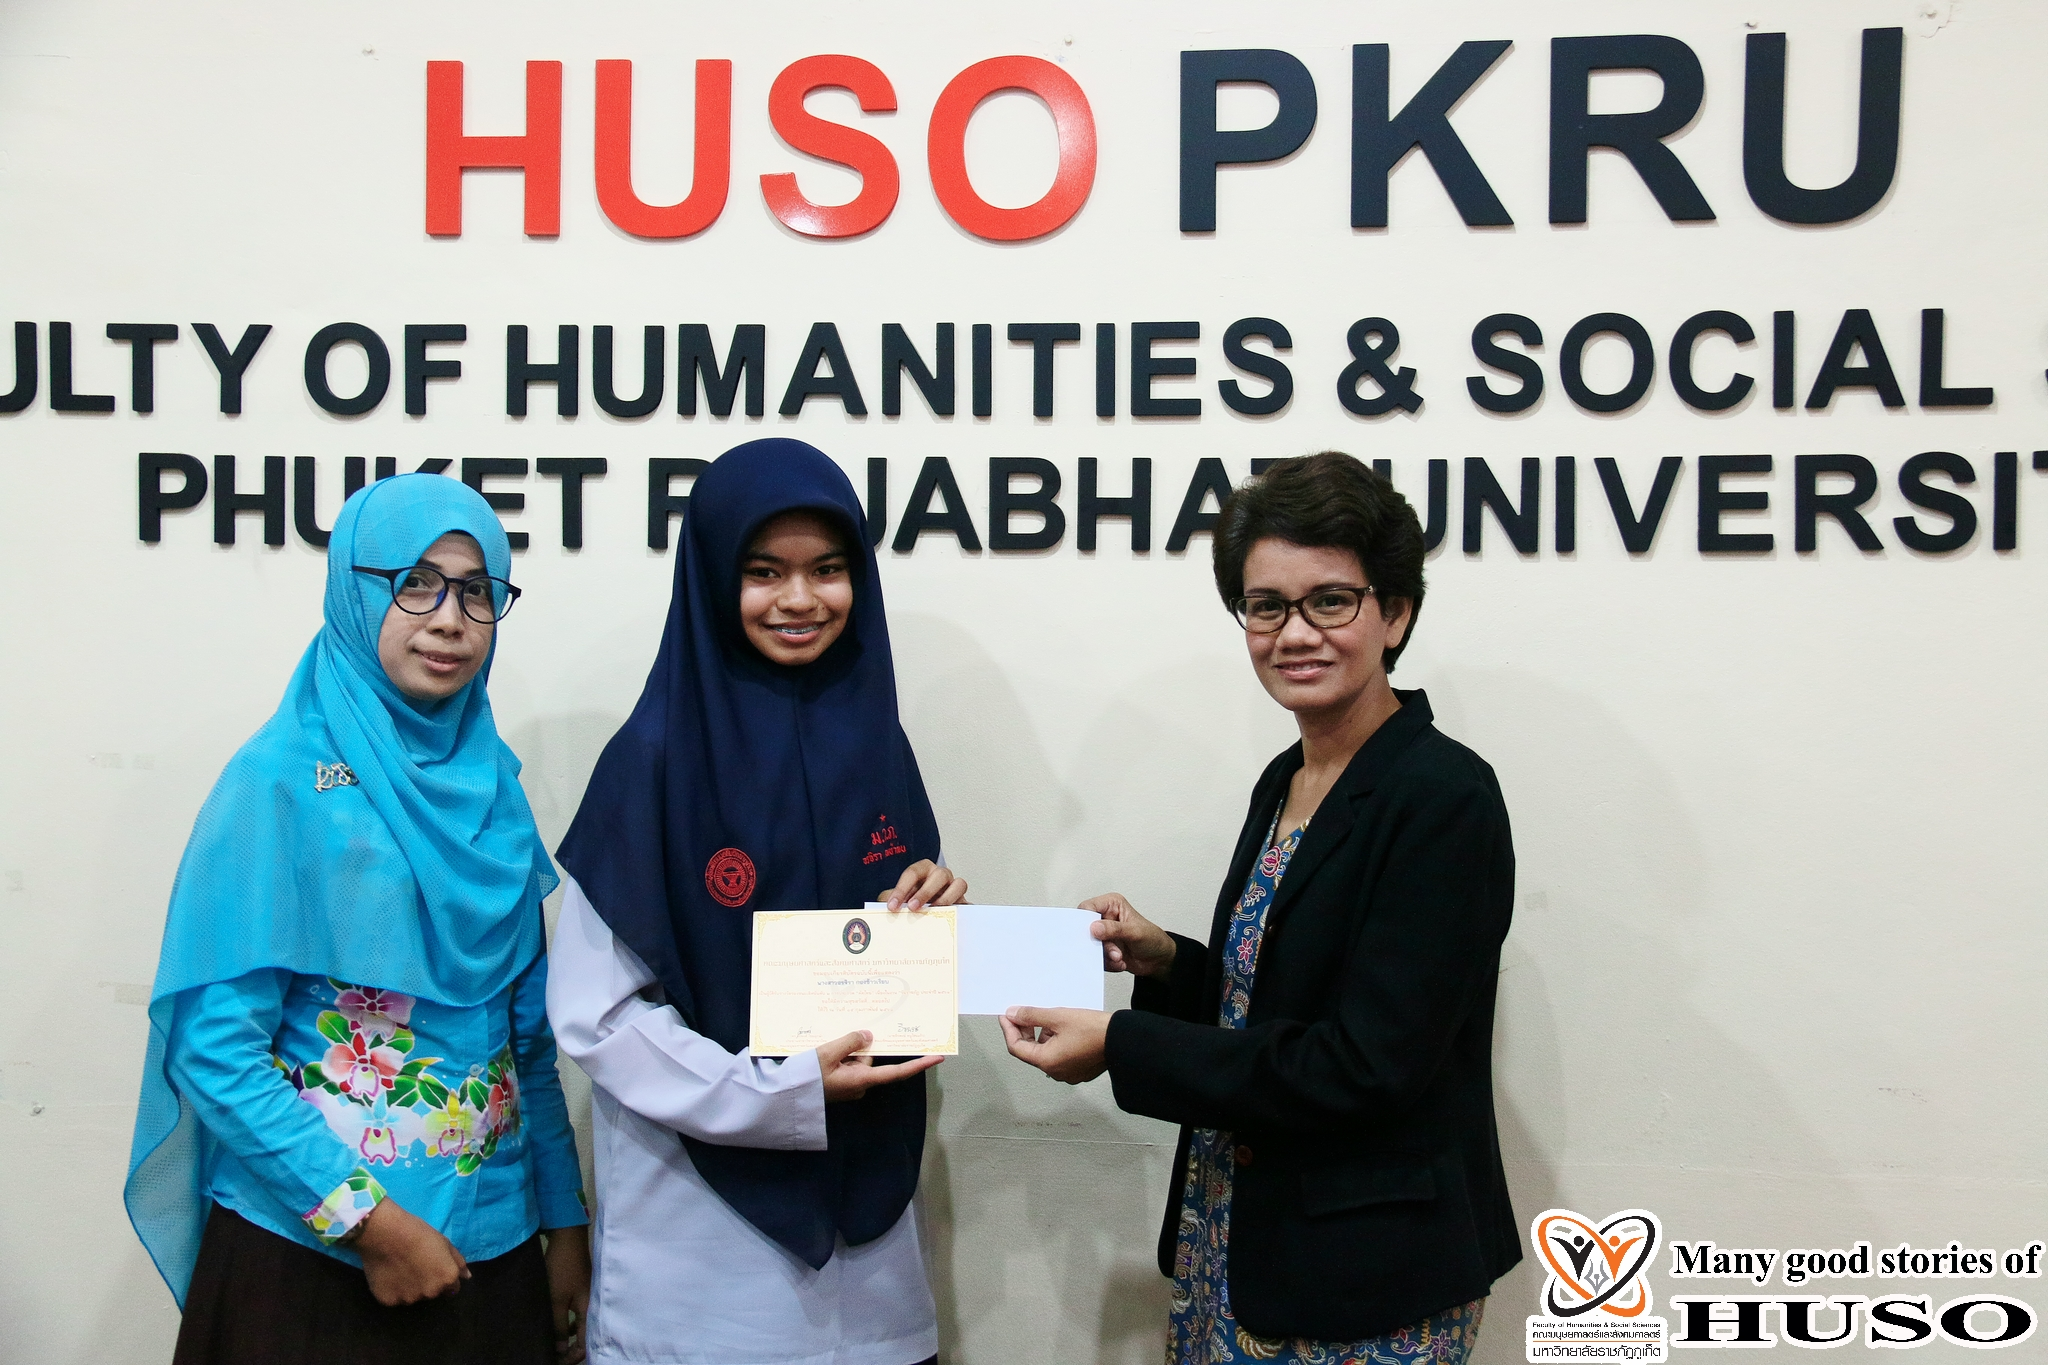 HUSO PKRU Thai Program Academic Skills Competition Thai Handwriting 15 February 2018 11